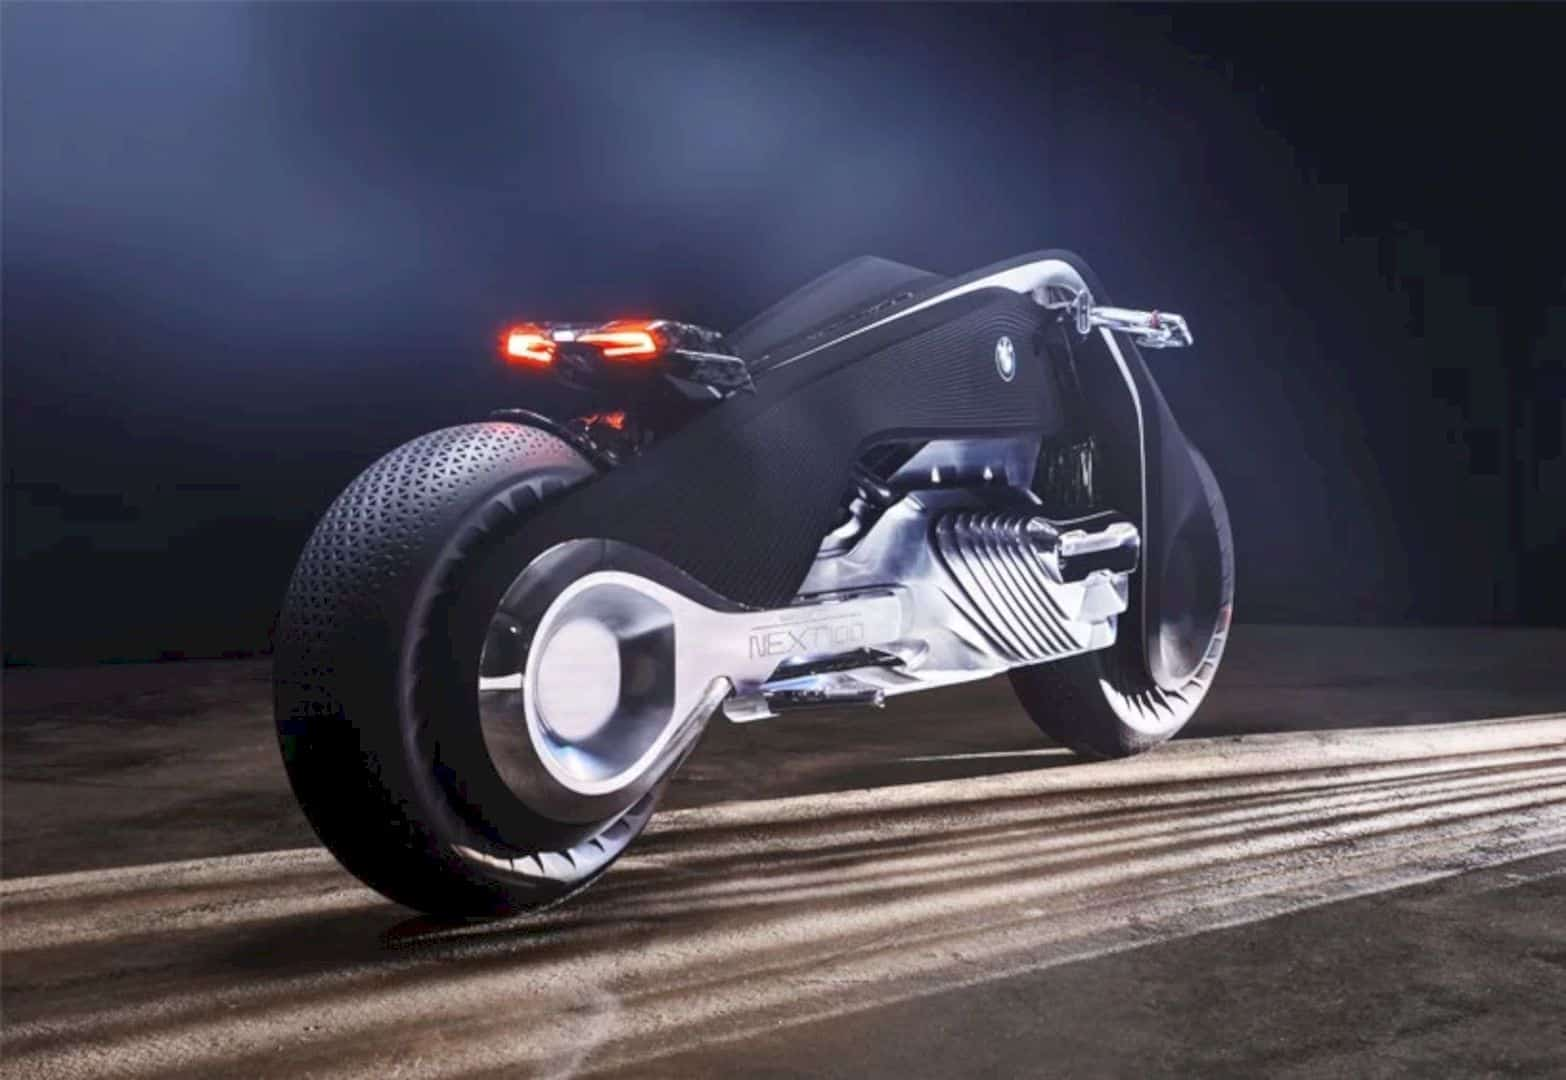 The Bmw Vision Next 100 Concept Motorcycle 4